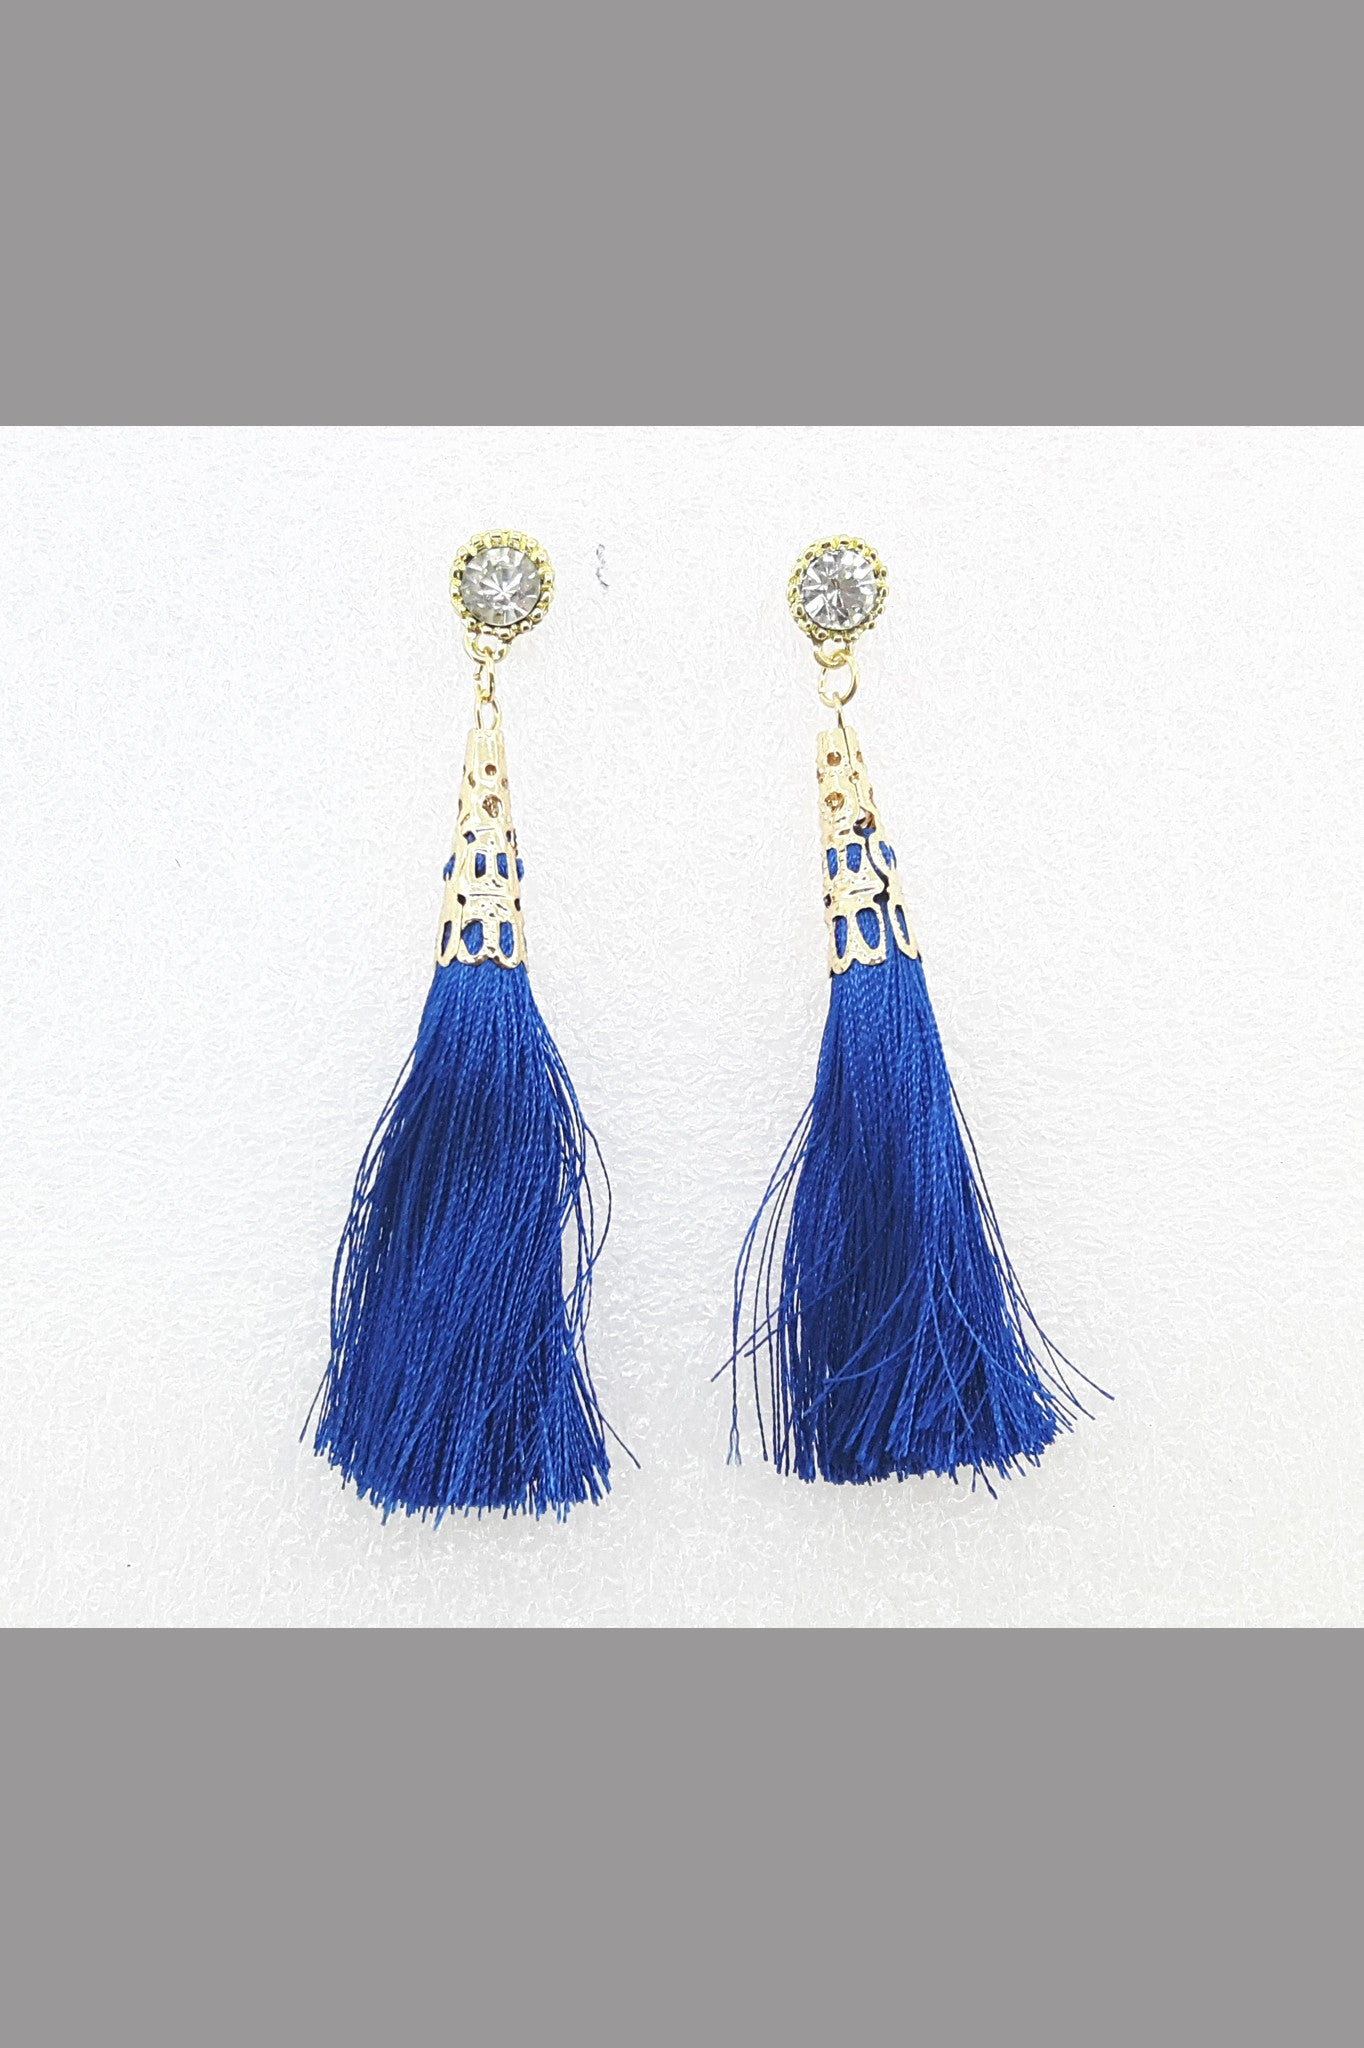 Ethnic Women Crystal Circular Tassel Rhinestone Earrings (Blue)